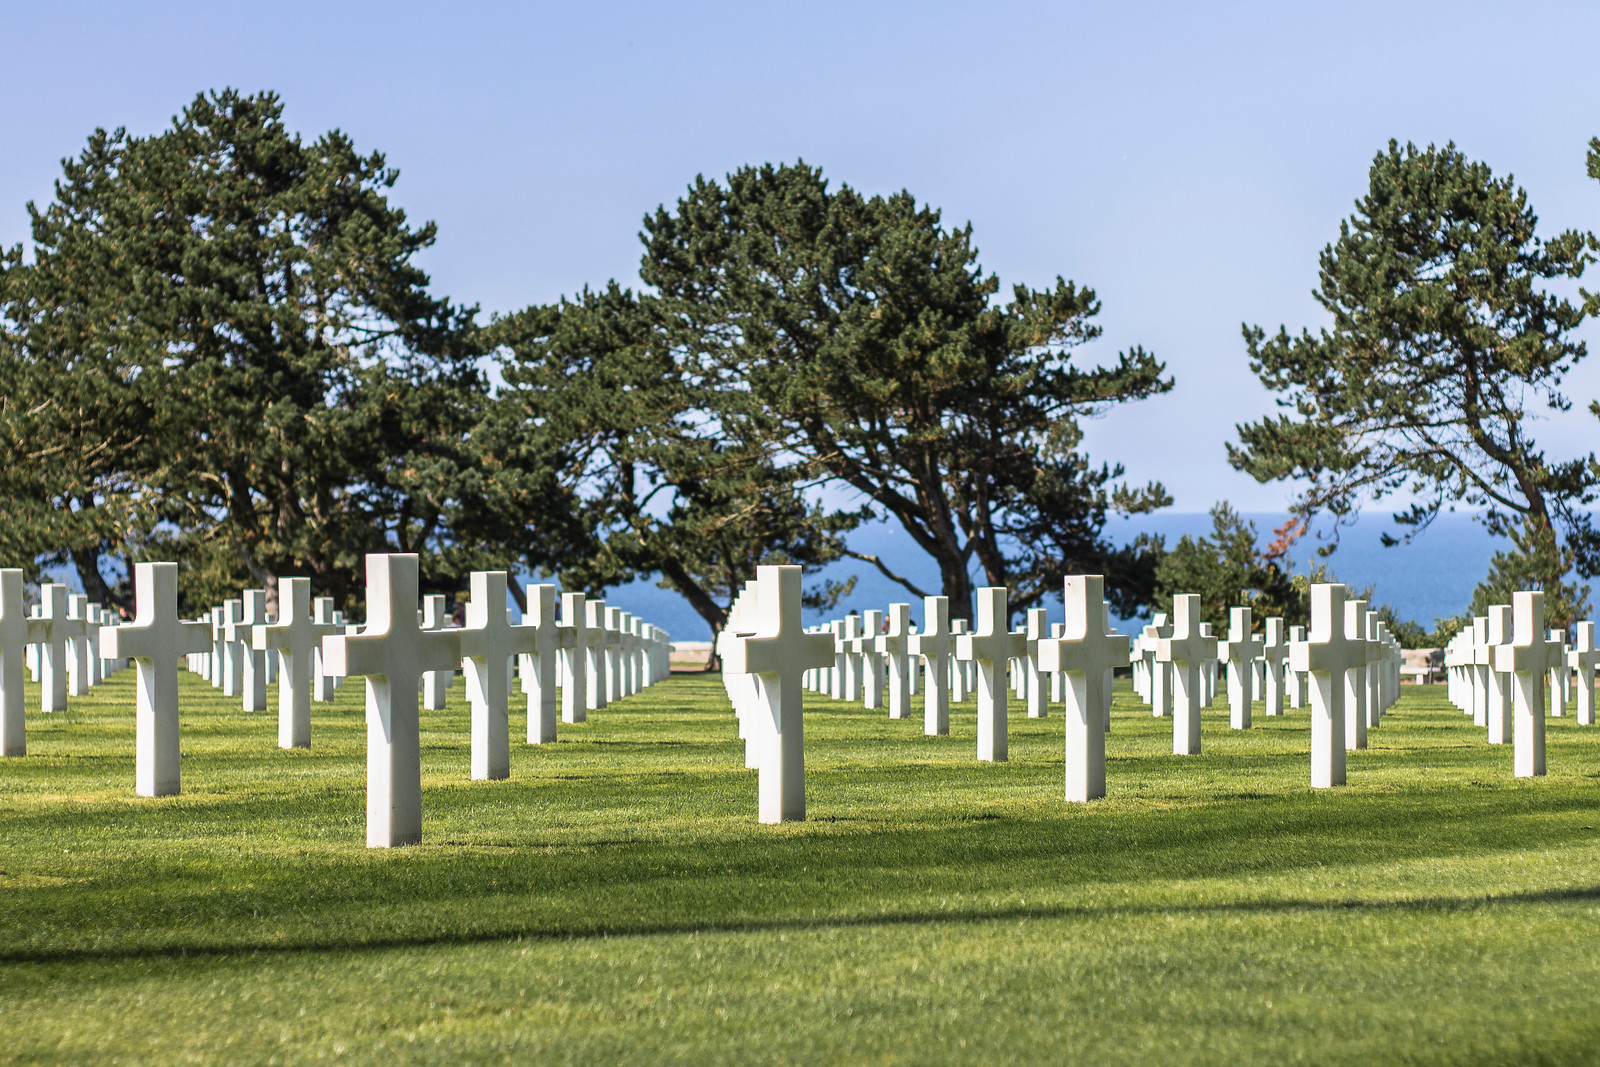 The Normandy American Cemetery and Memorial, France